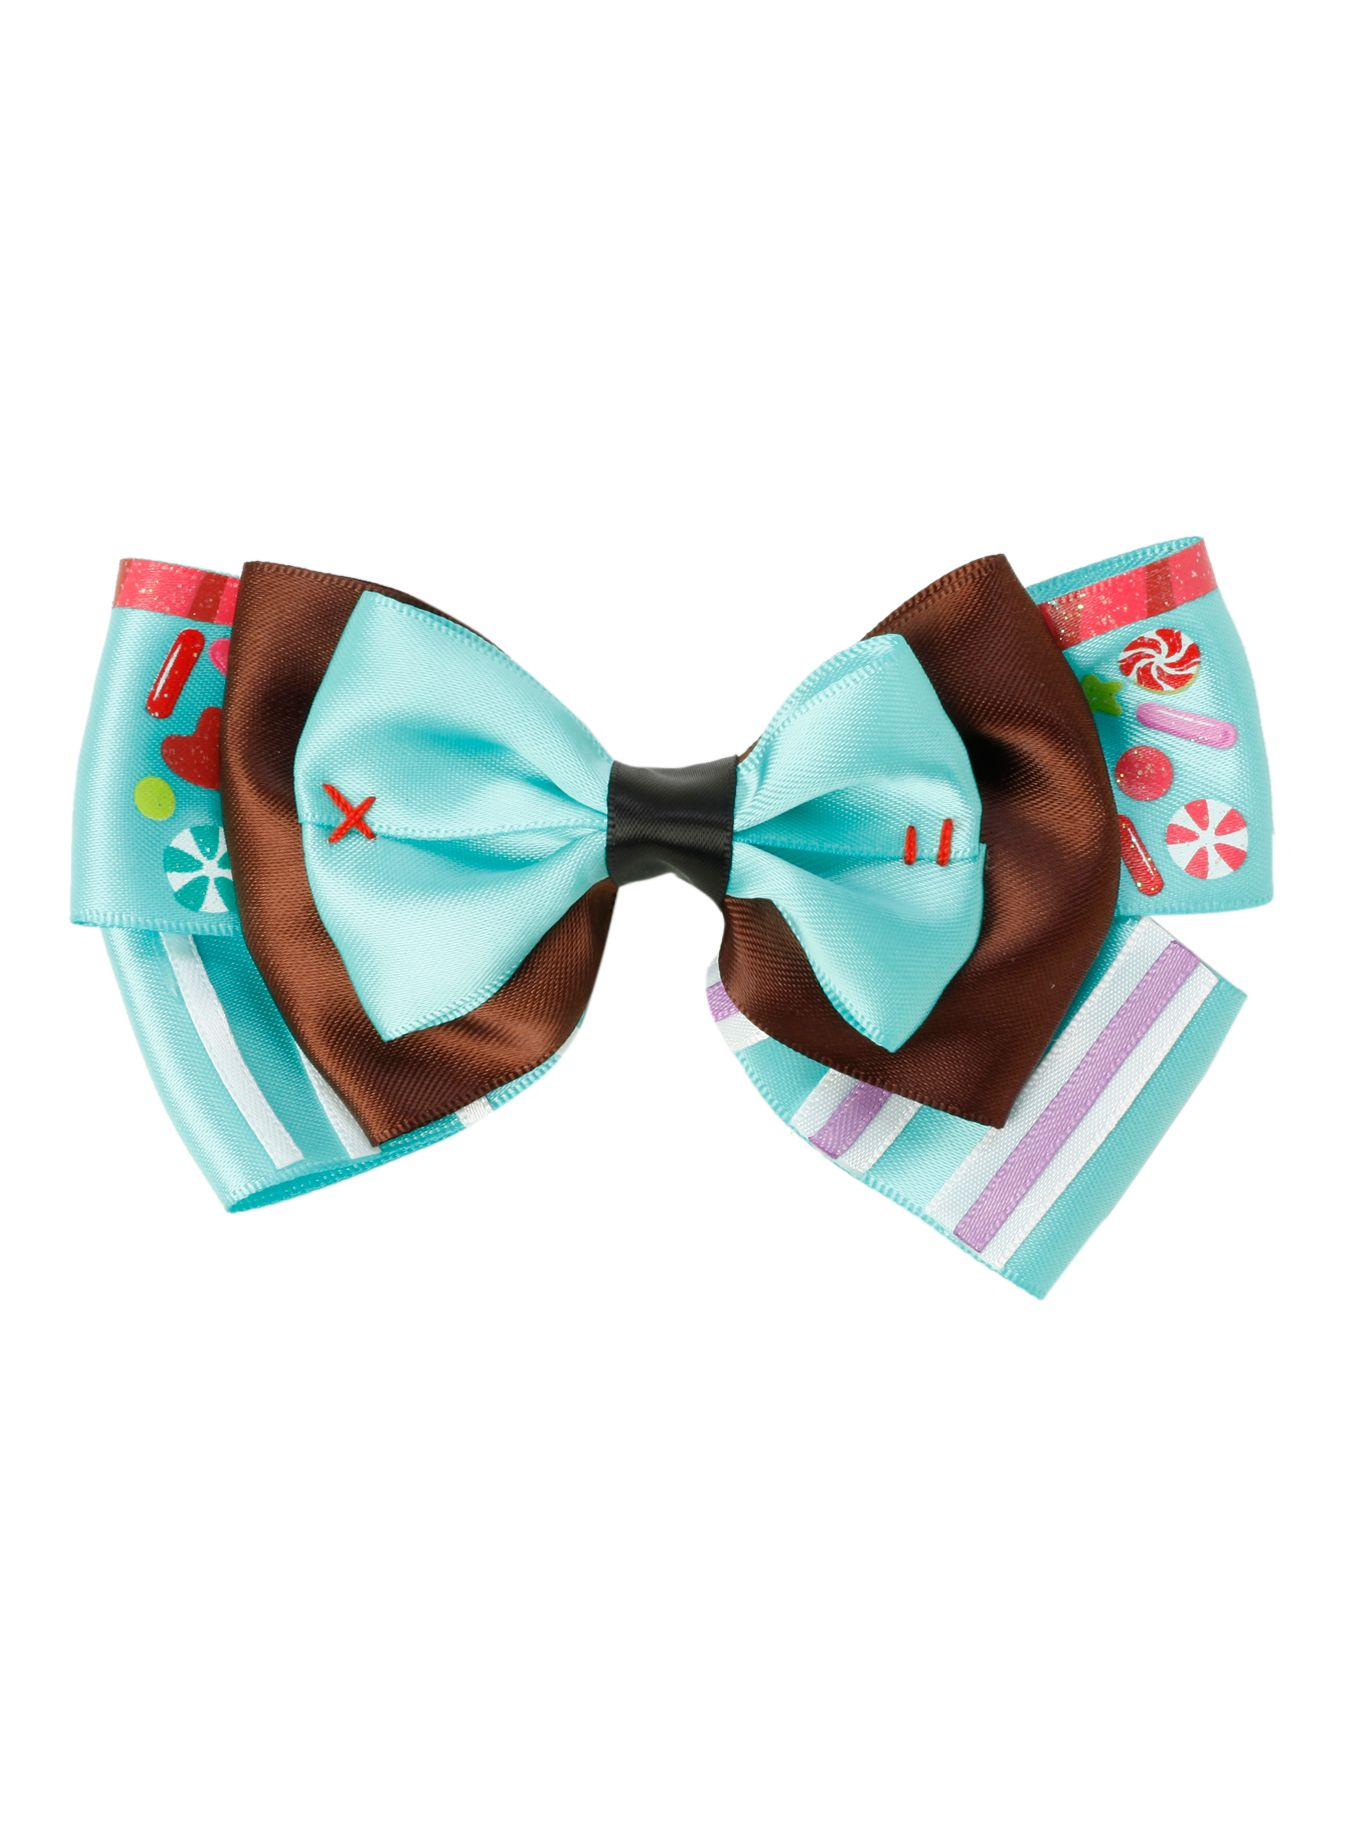 This Bow Will Get You Wreck Ognition Hot Topic Disneydisney